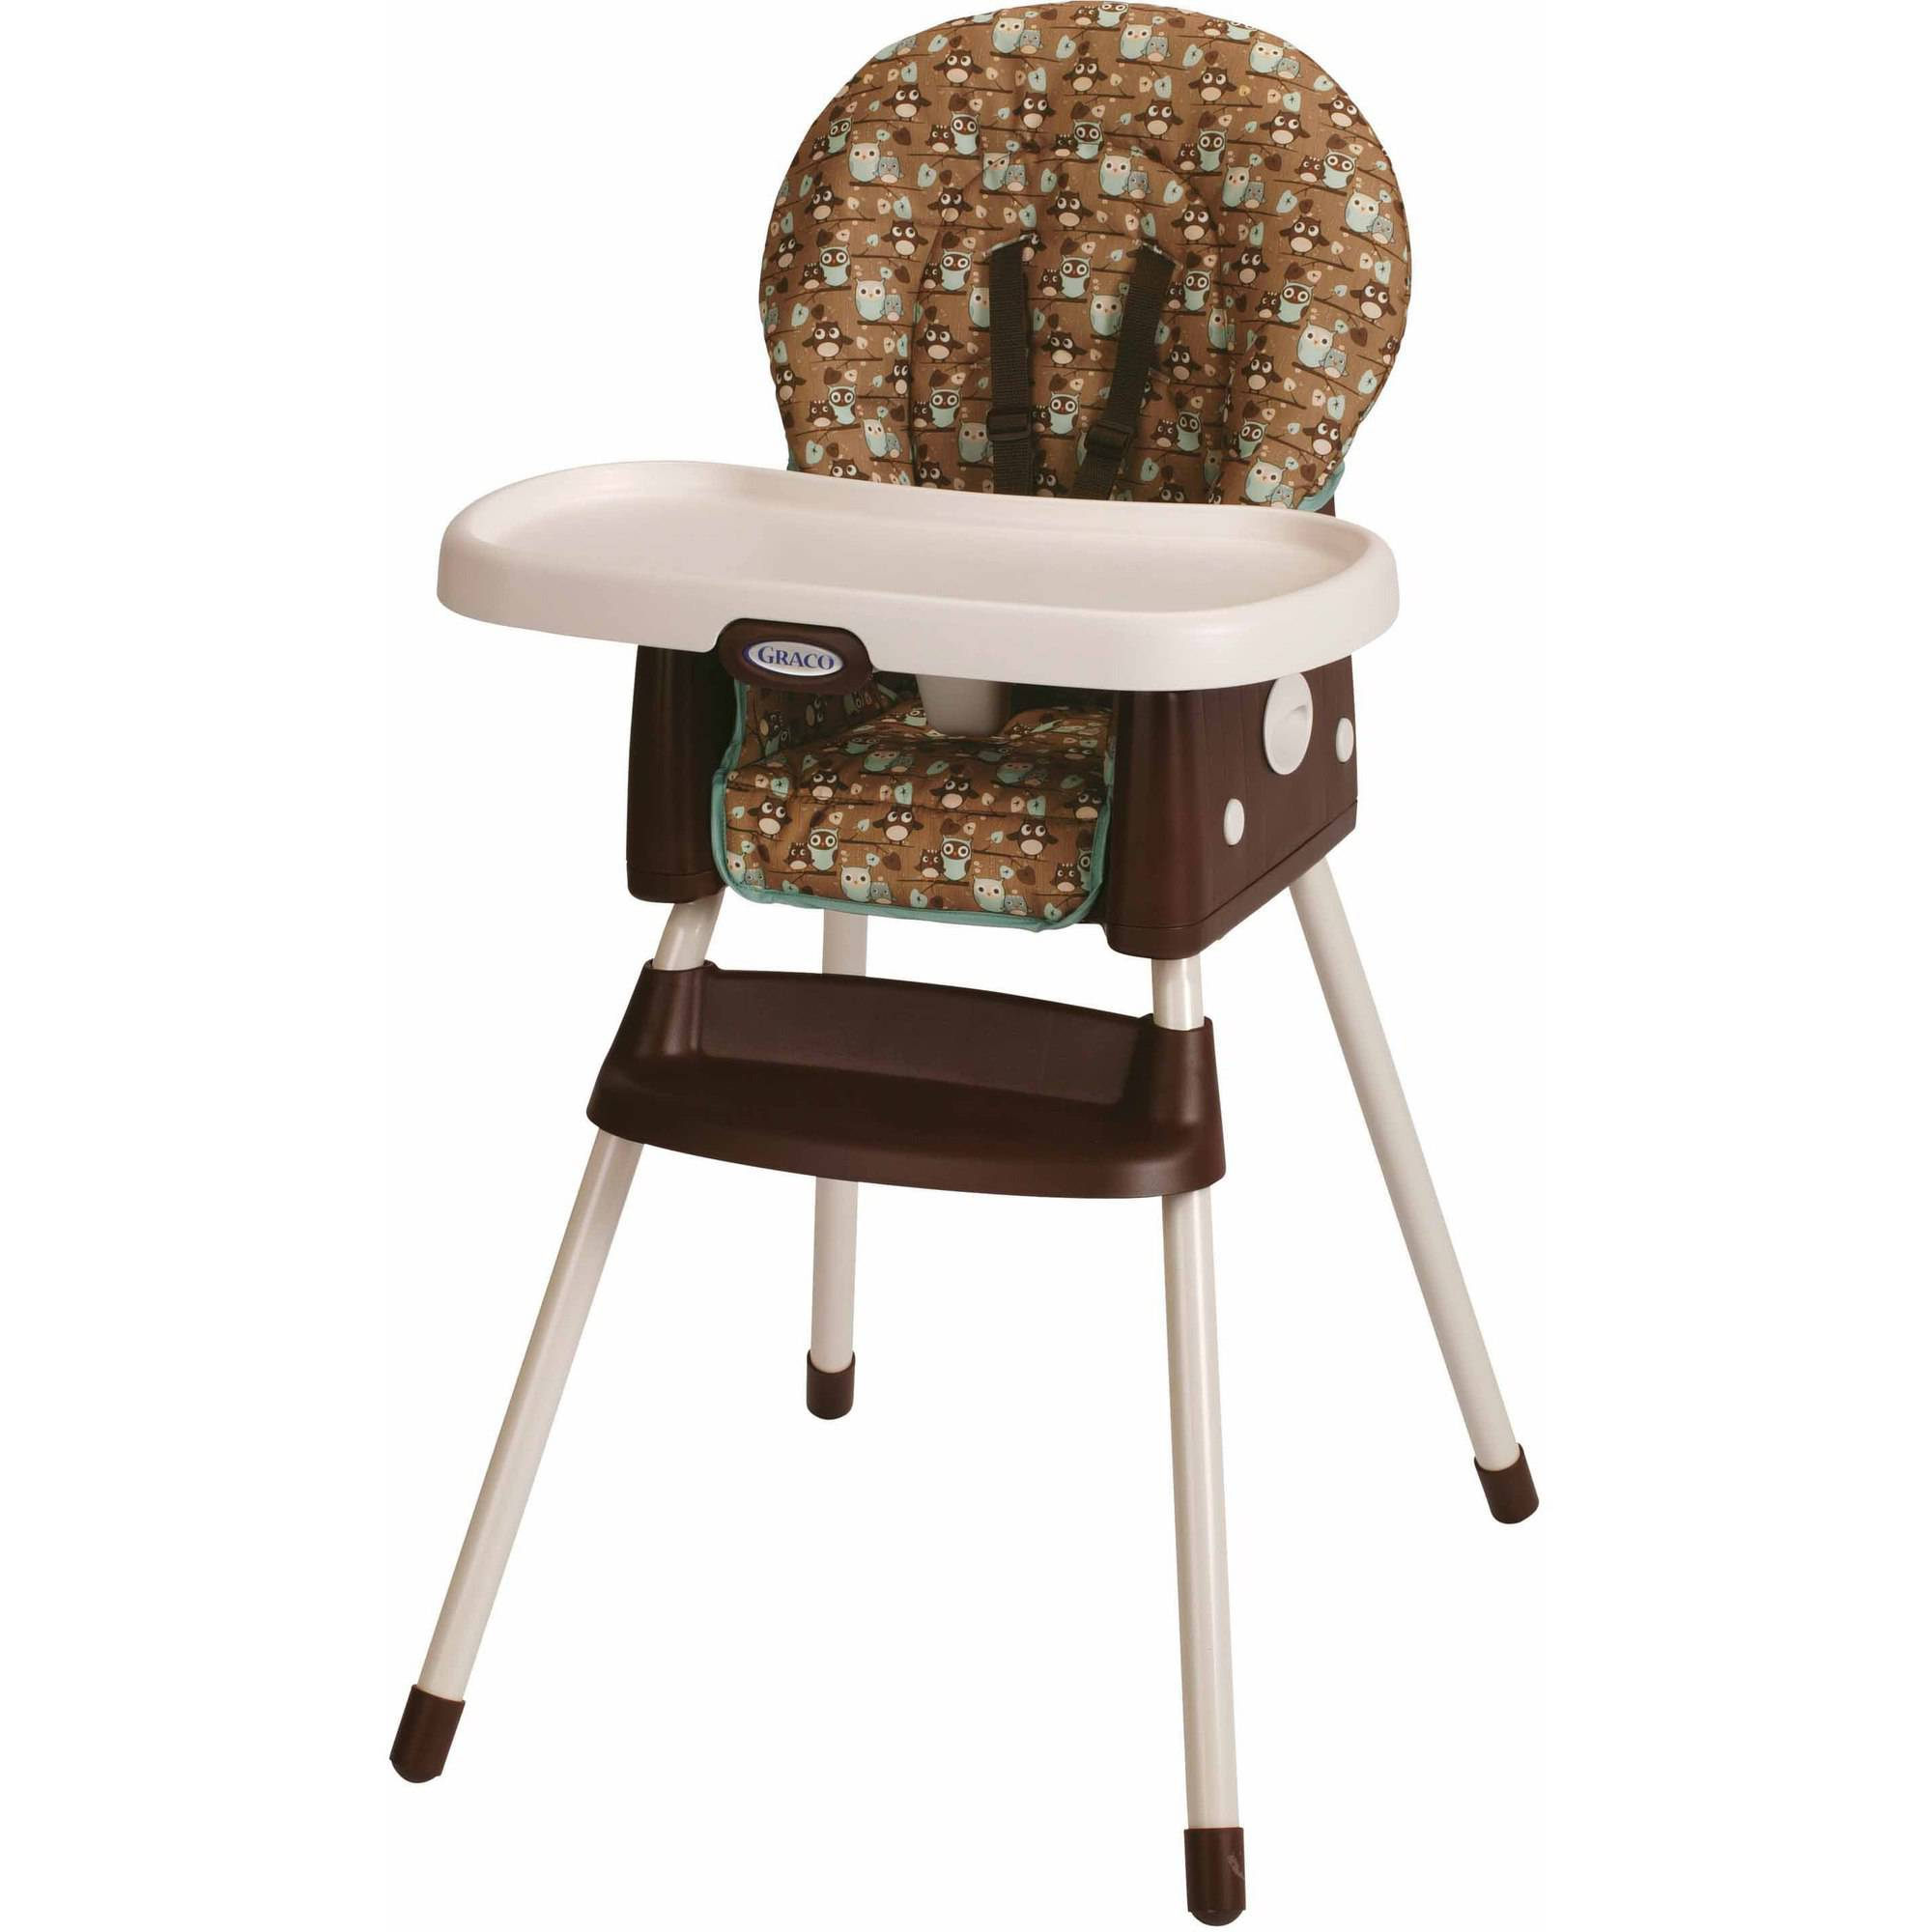 Graco SimpleSwitch High Chair, Little Hoot